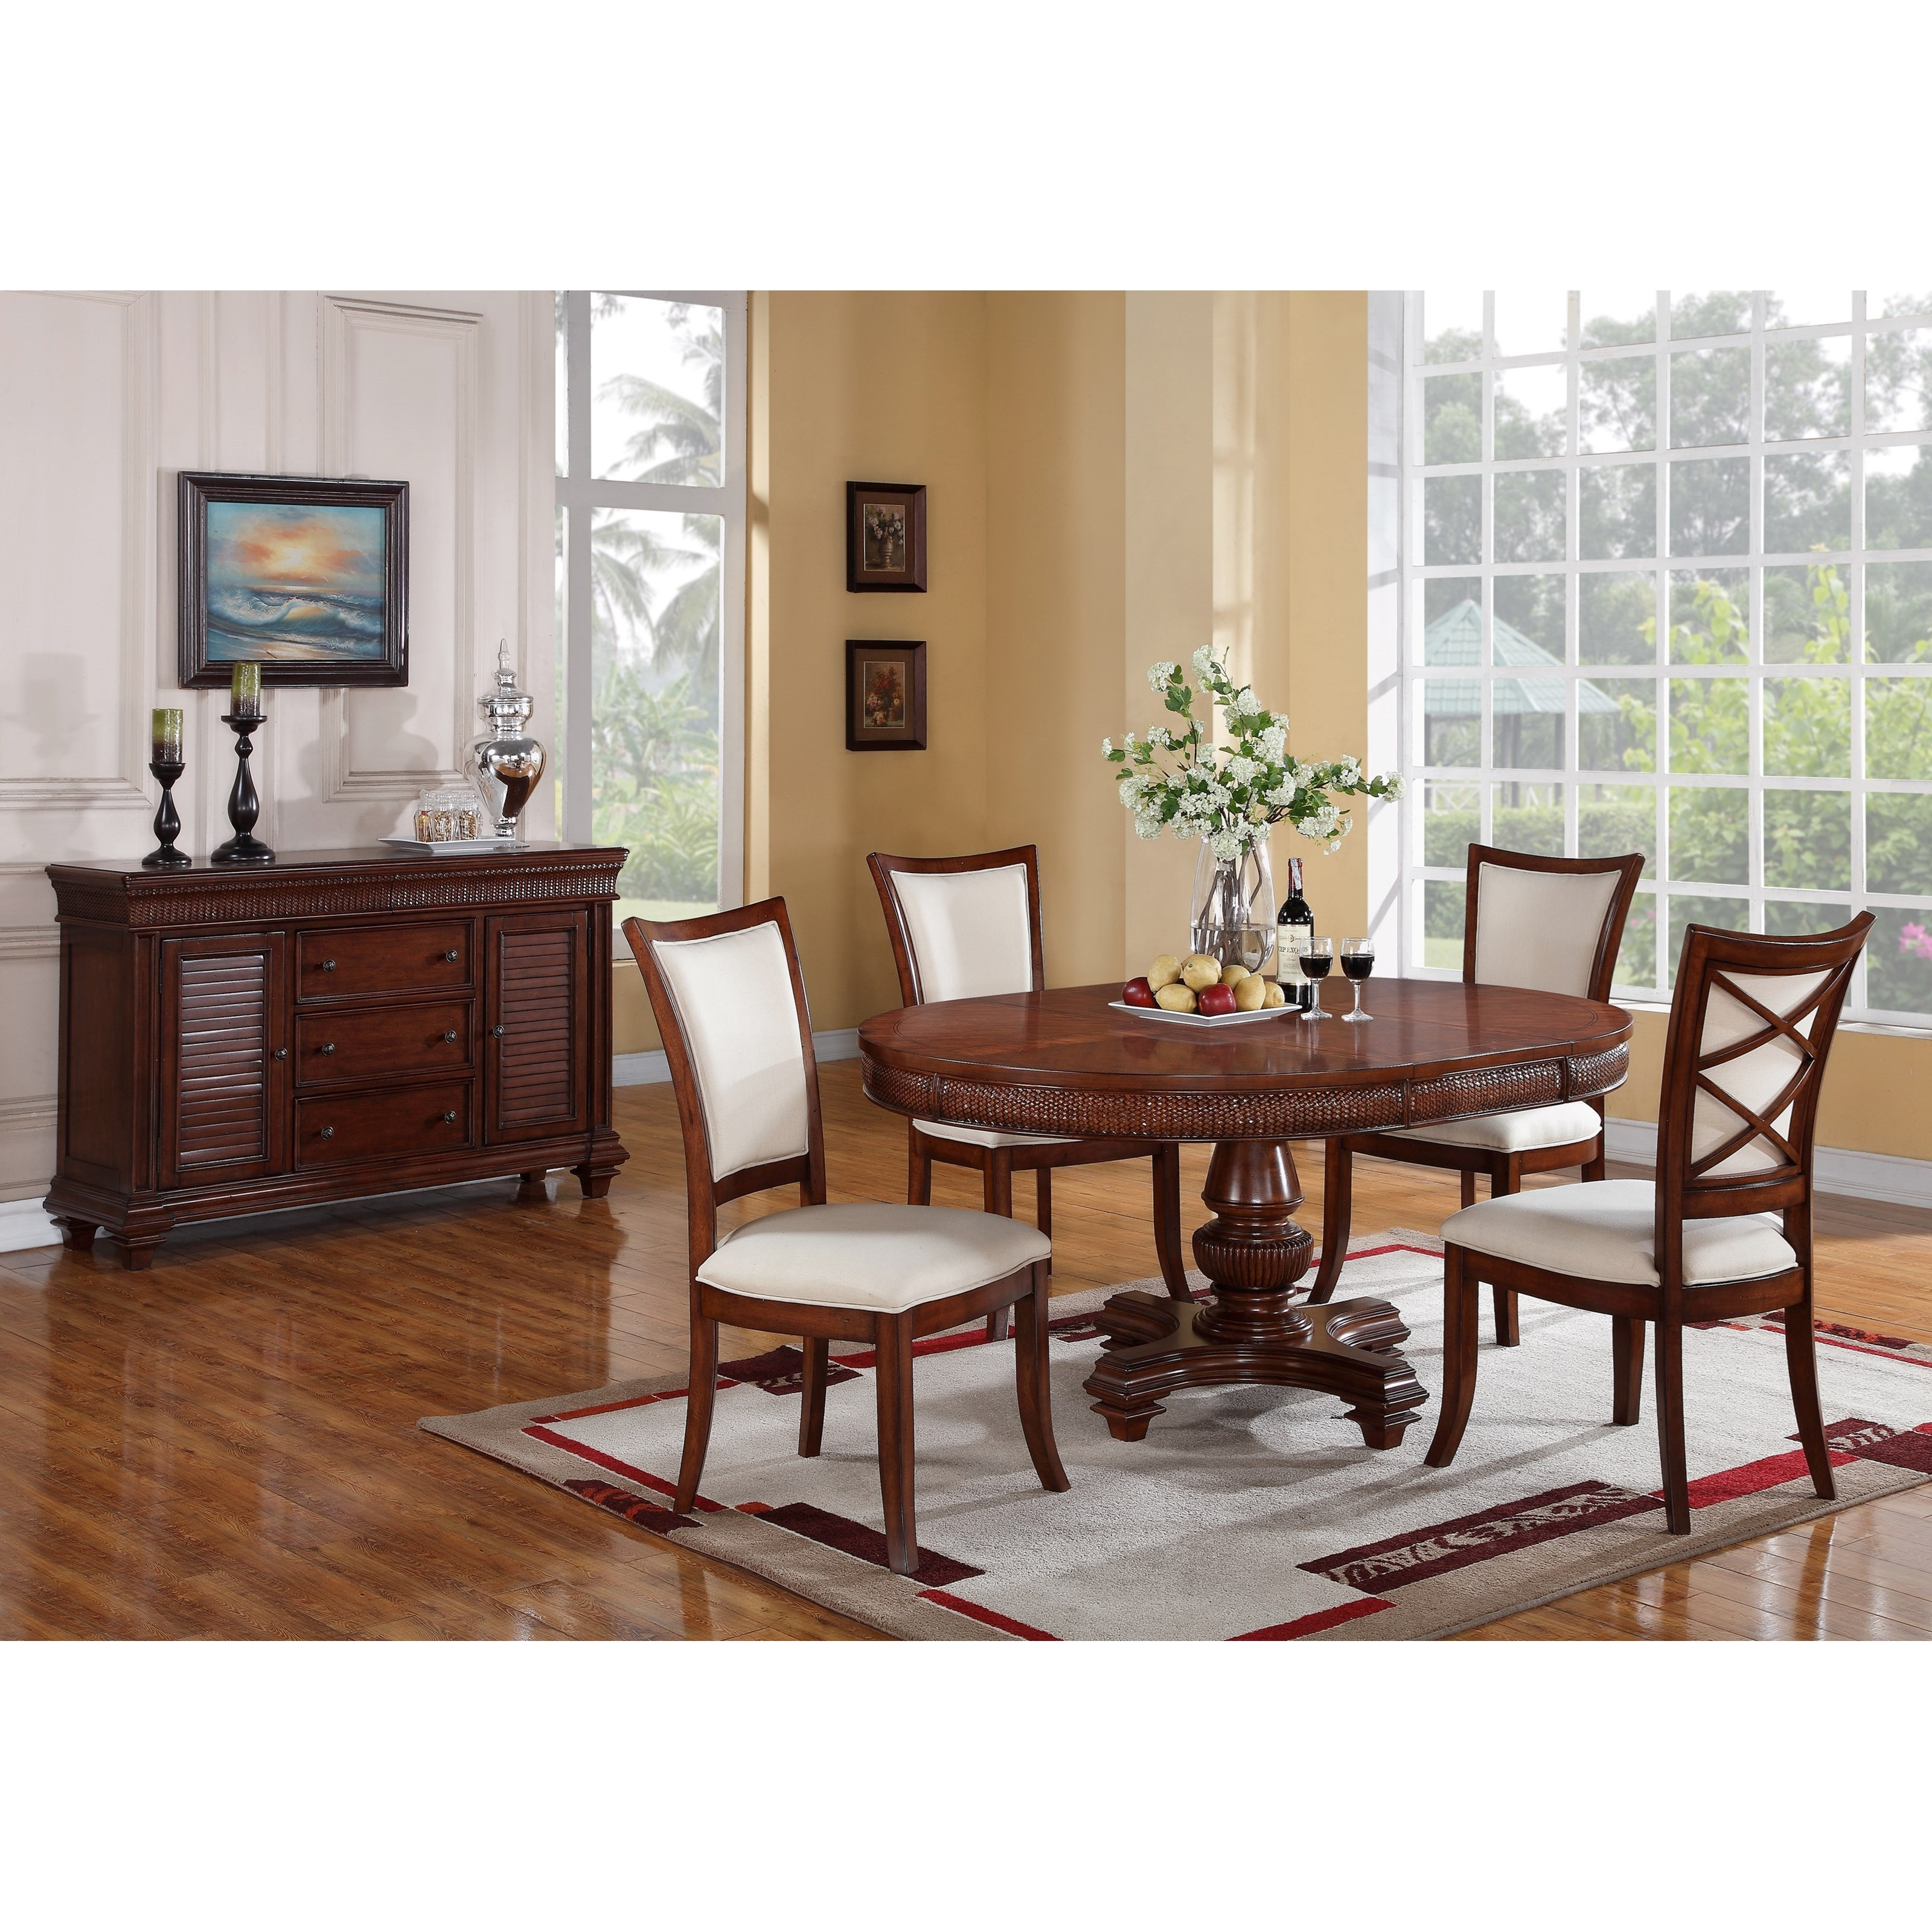 Riverside furniture windward bay casual dining room group for Casual dining room